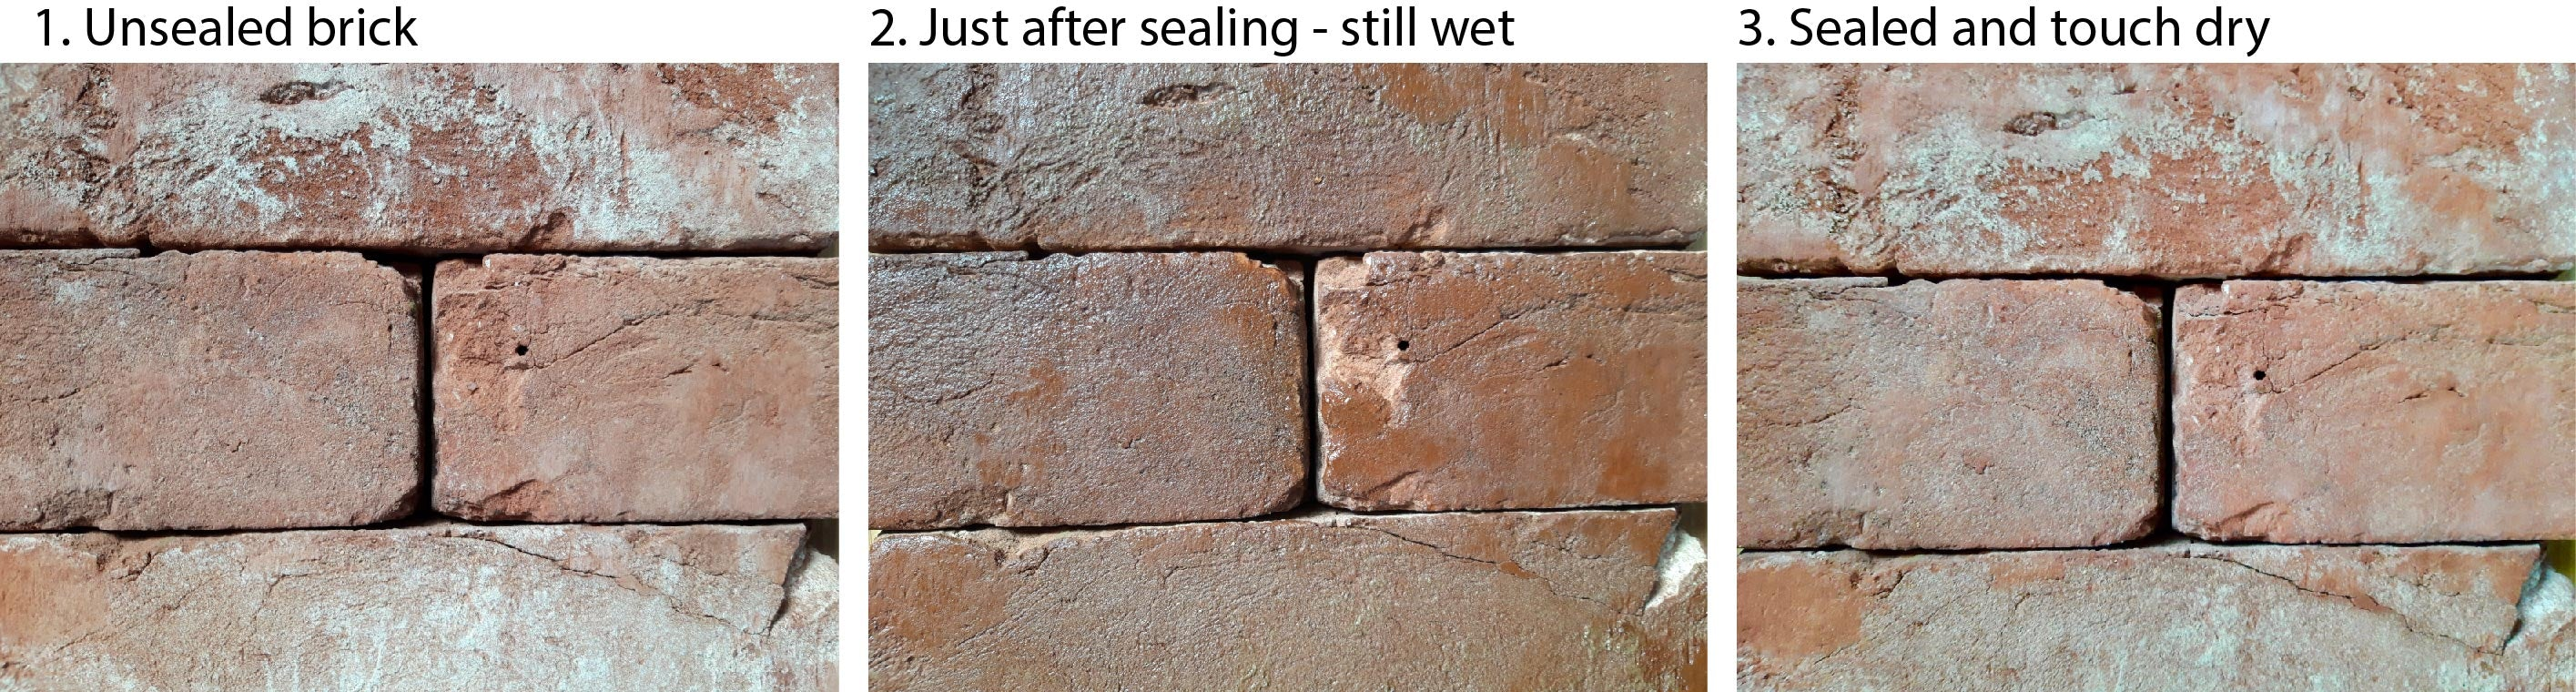 Unsealed and sealed brick tiles